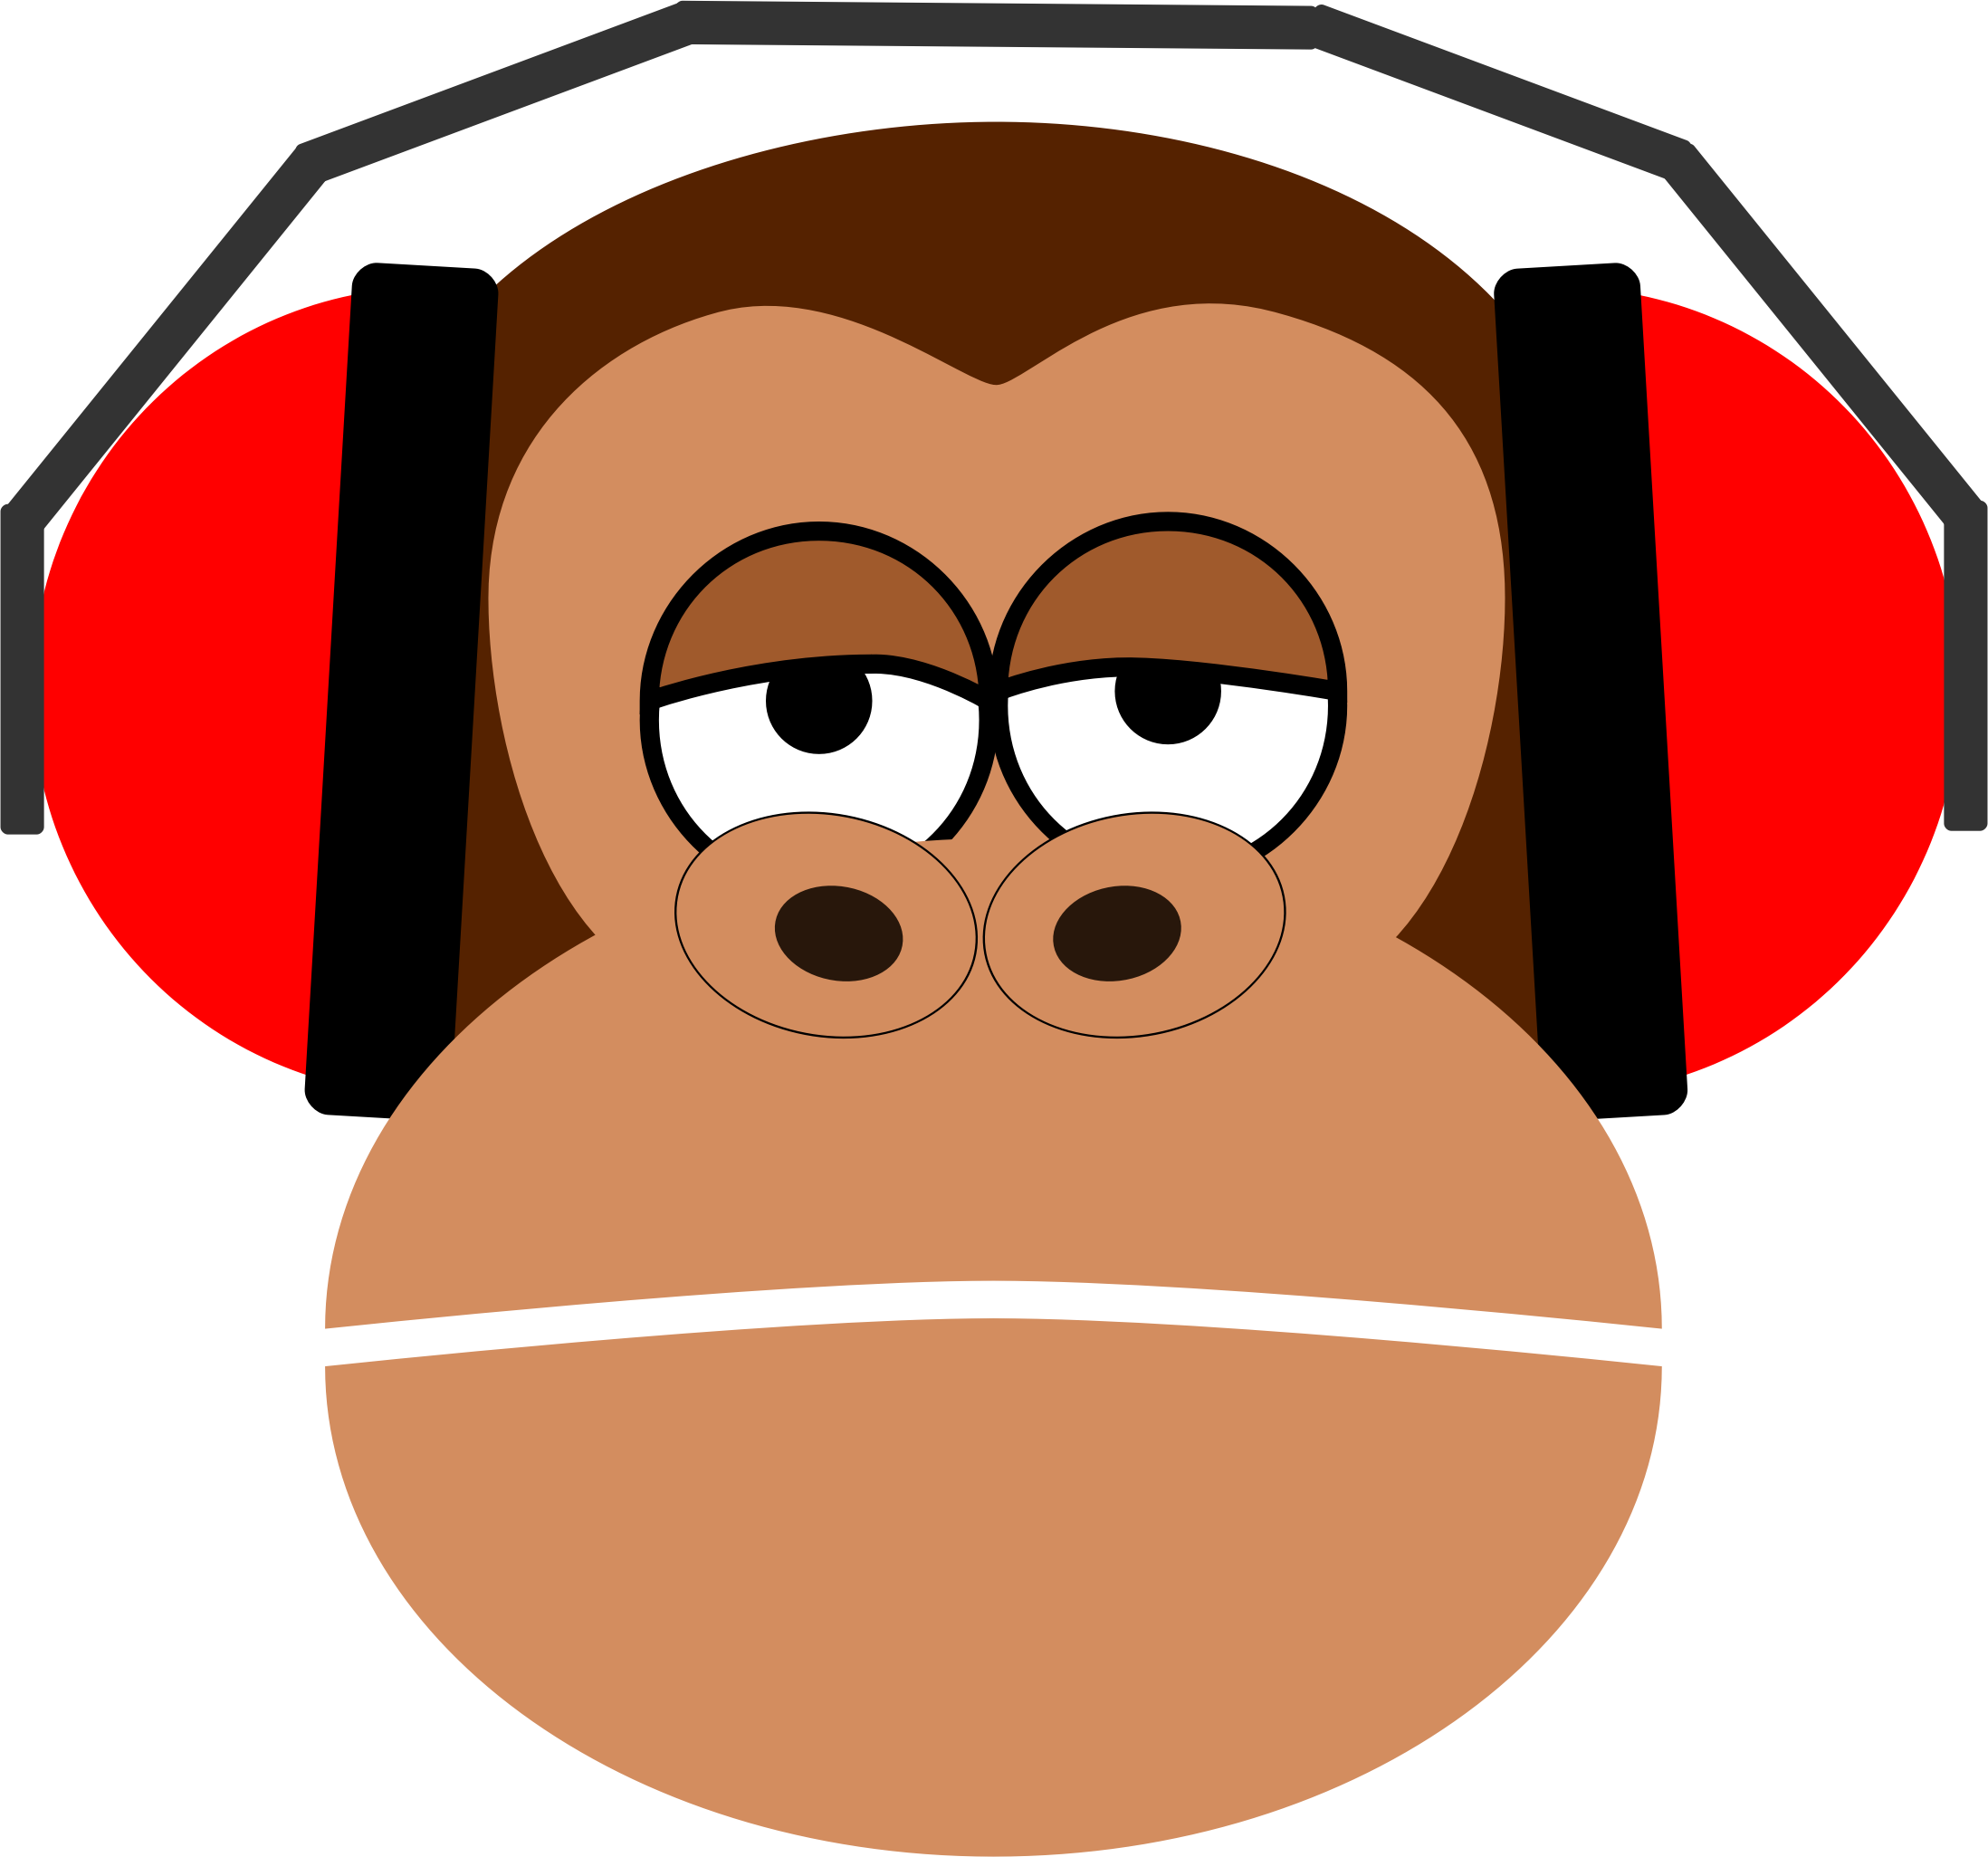 Hearing protection clip art.